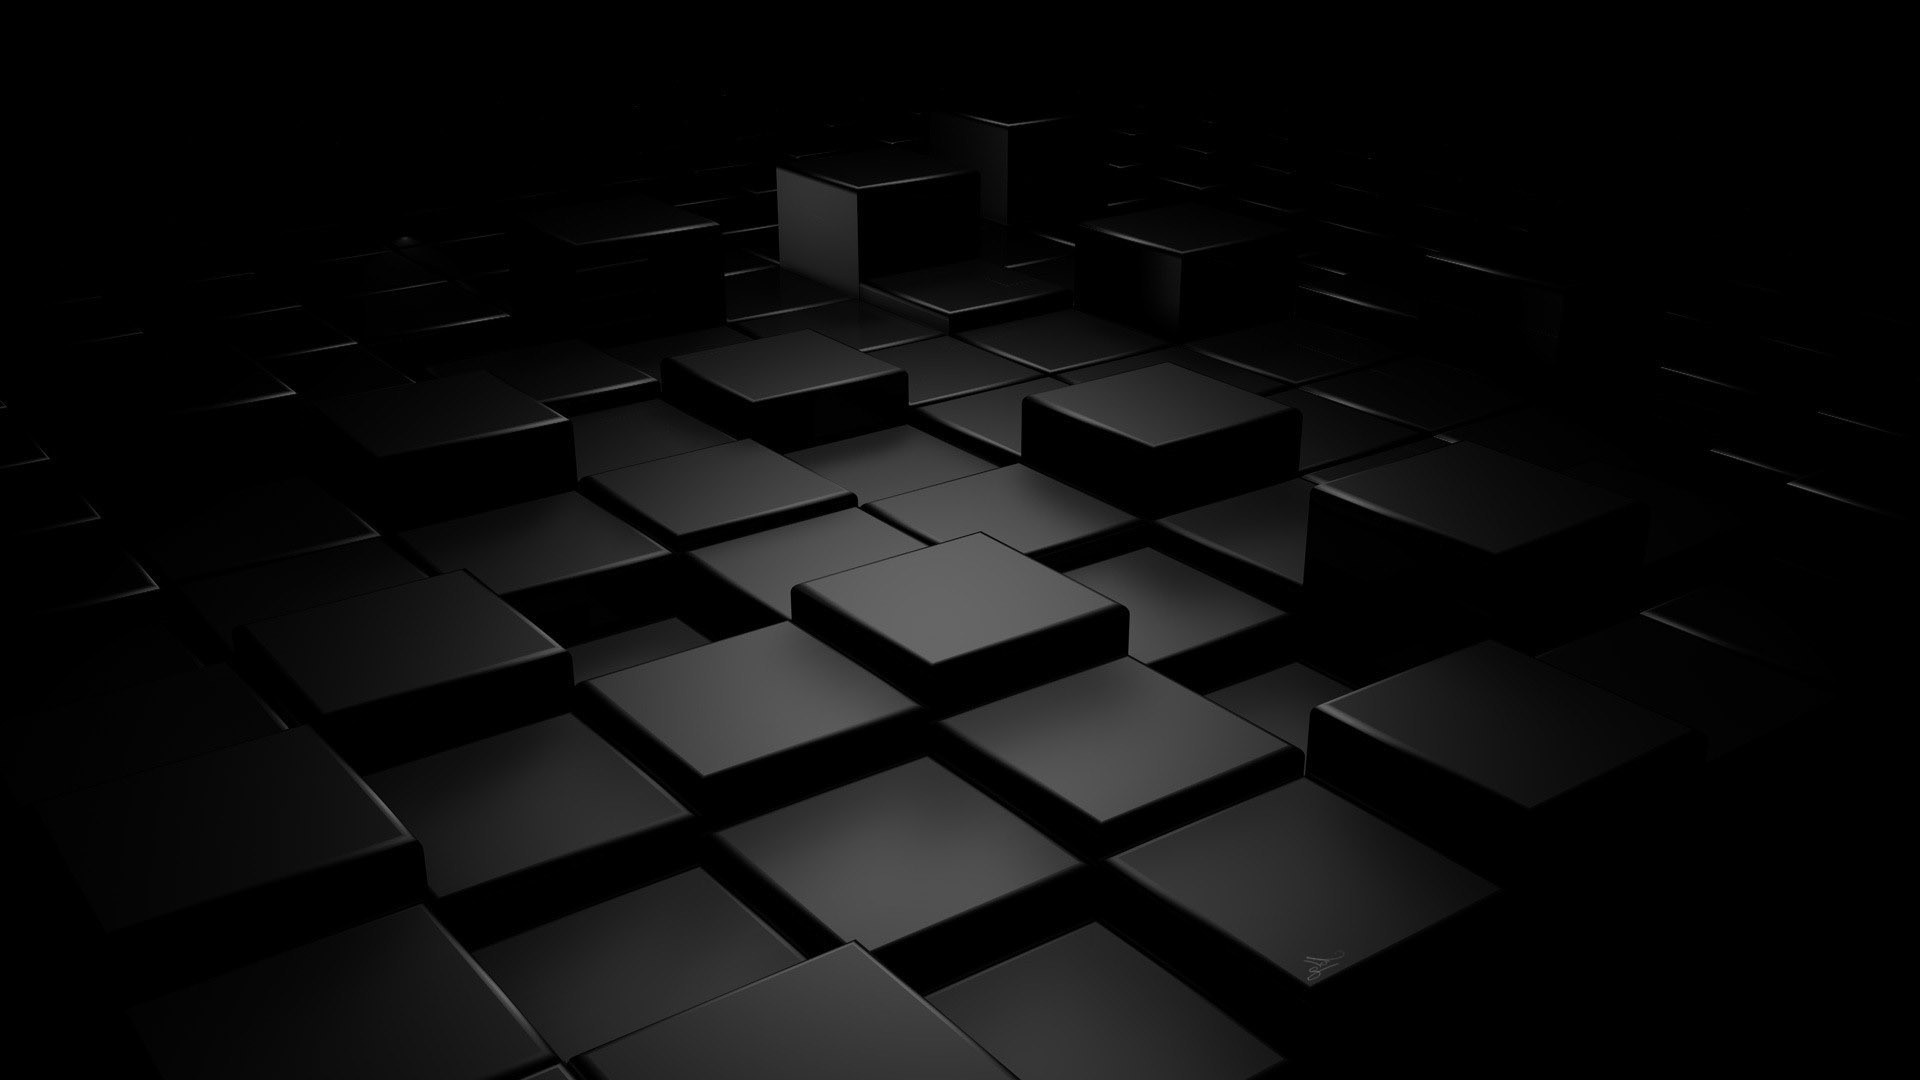 1920x1080 Black Abstract Wallpapers Desktop Background